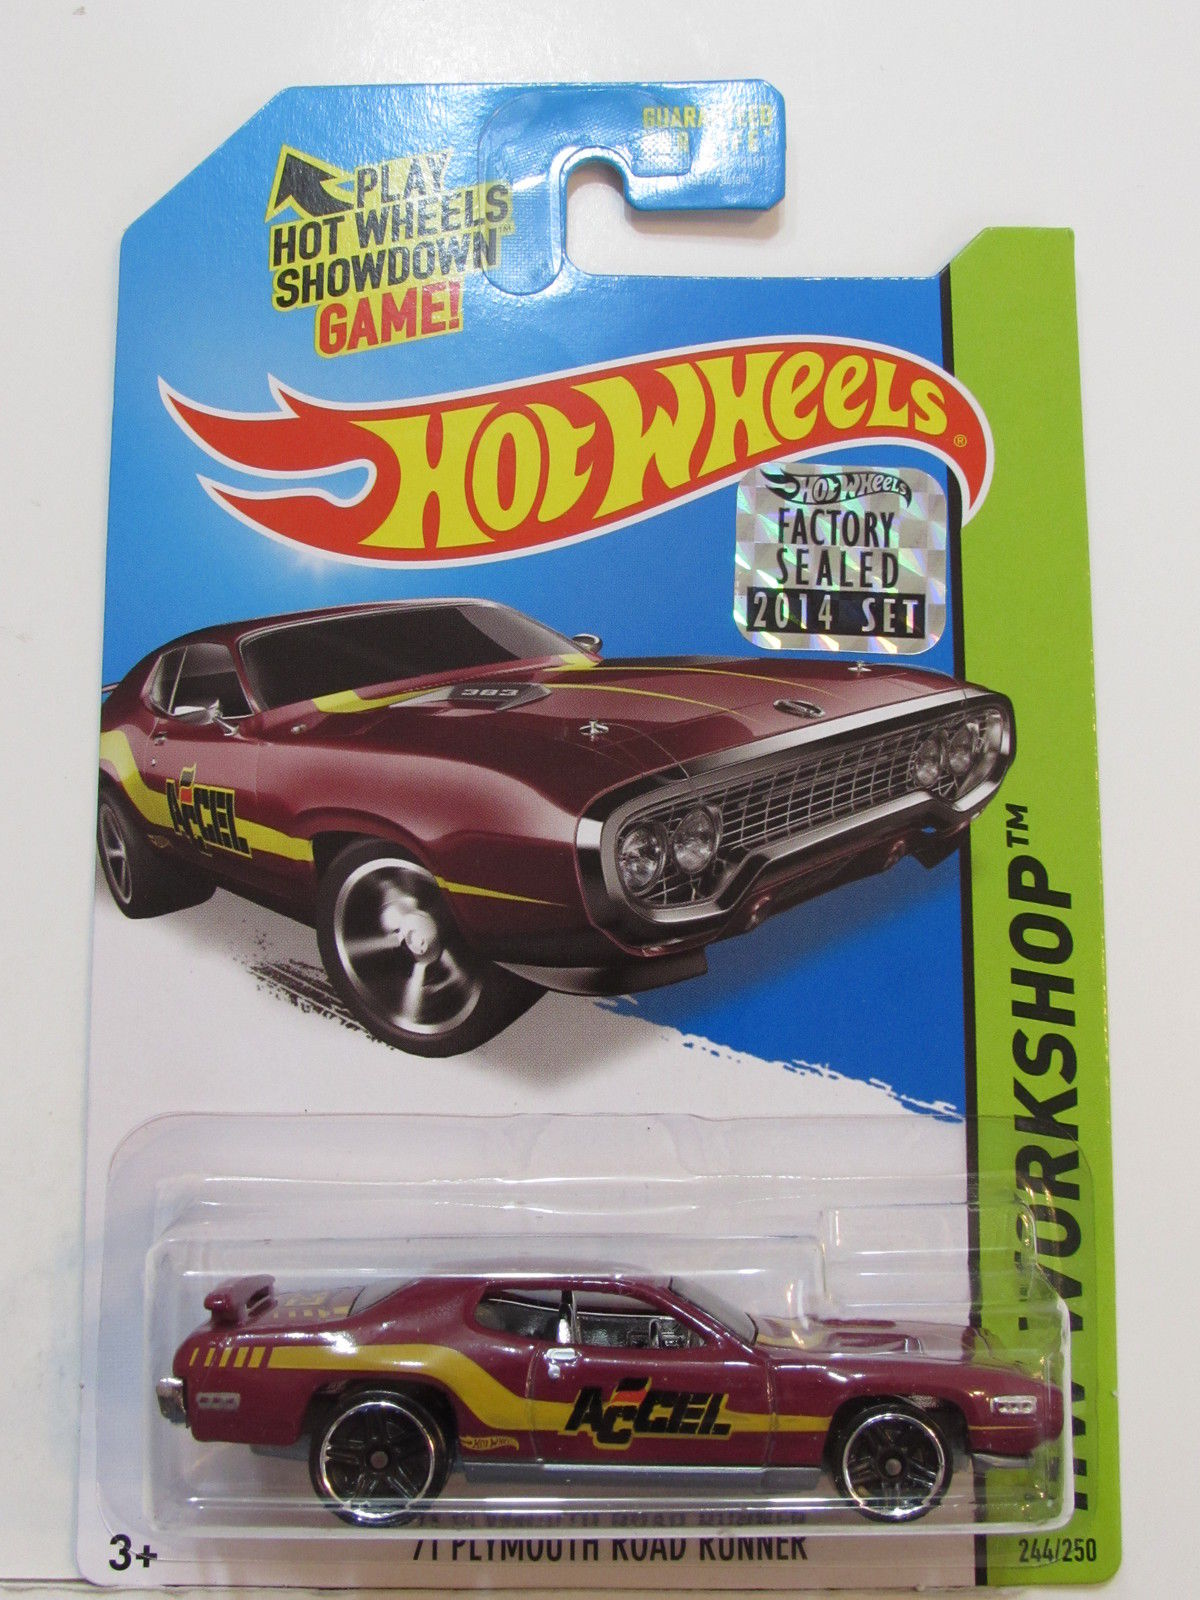 HOT WHEELS 2014 HW WORKSHOP '71 PLYMOUTH ROAD RUNNER FACTORY SEALED